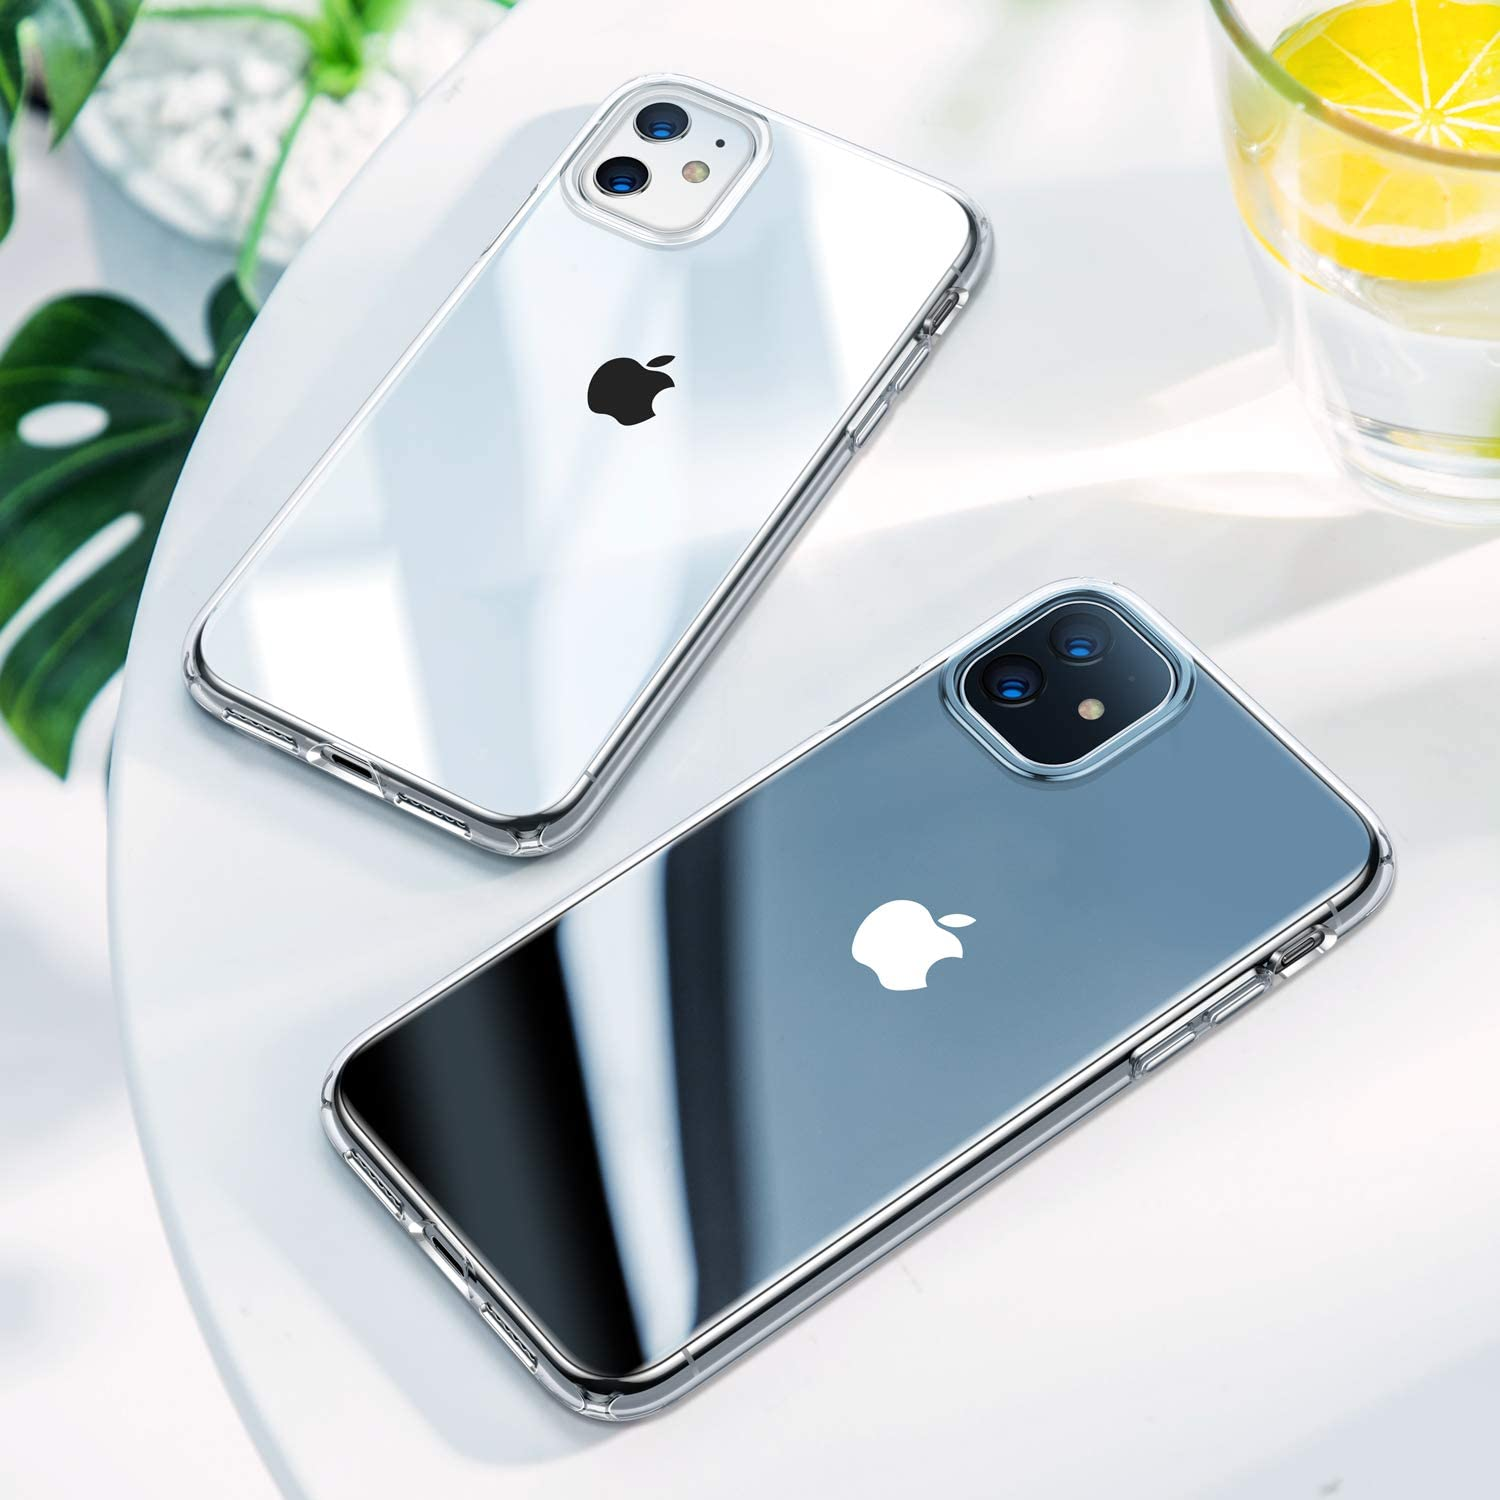 H19834f83b0dd4bfb926c80f4f56983493 - For iPhone XR 11 SE 2020 Case Crystal Clear Phone Case for iPhone SE 8 7 6s 6 5s 11 Pro Max Xs Max Case TPU Shockproof Cover